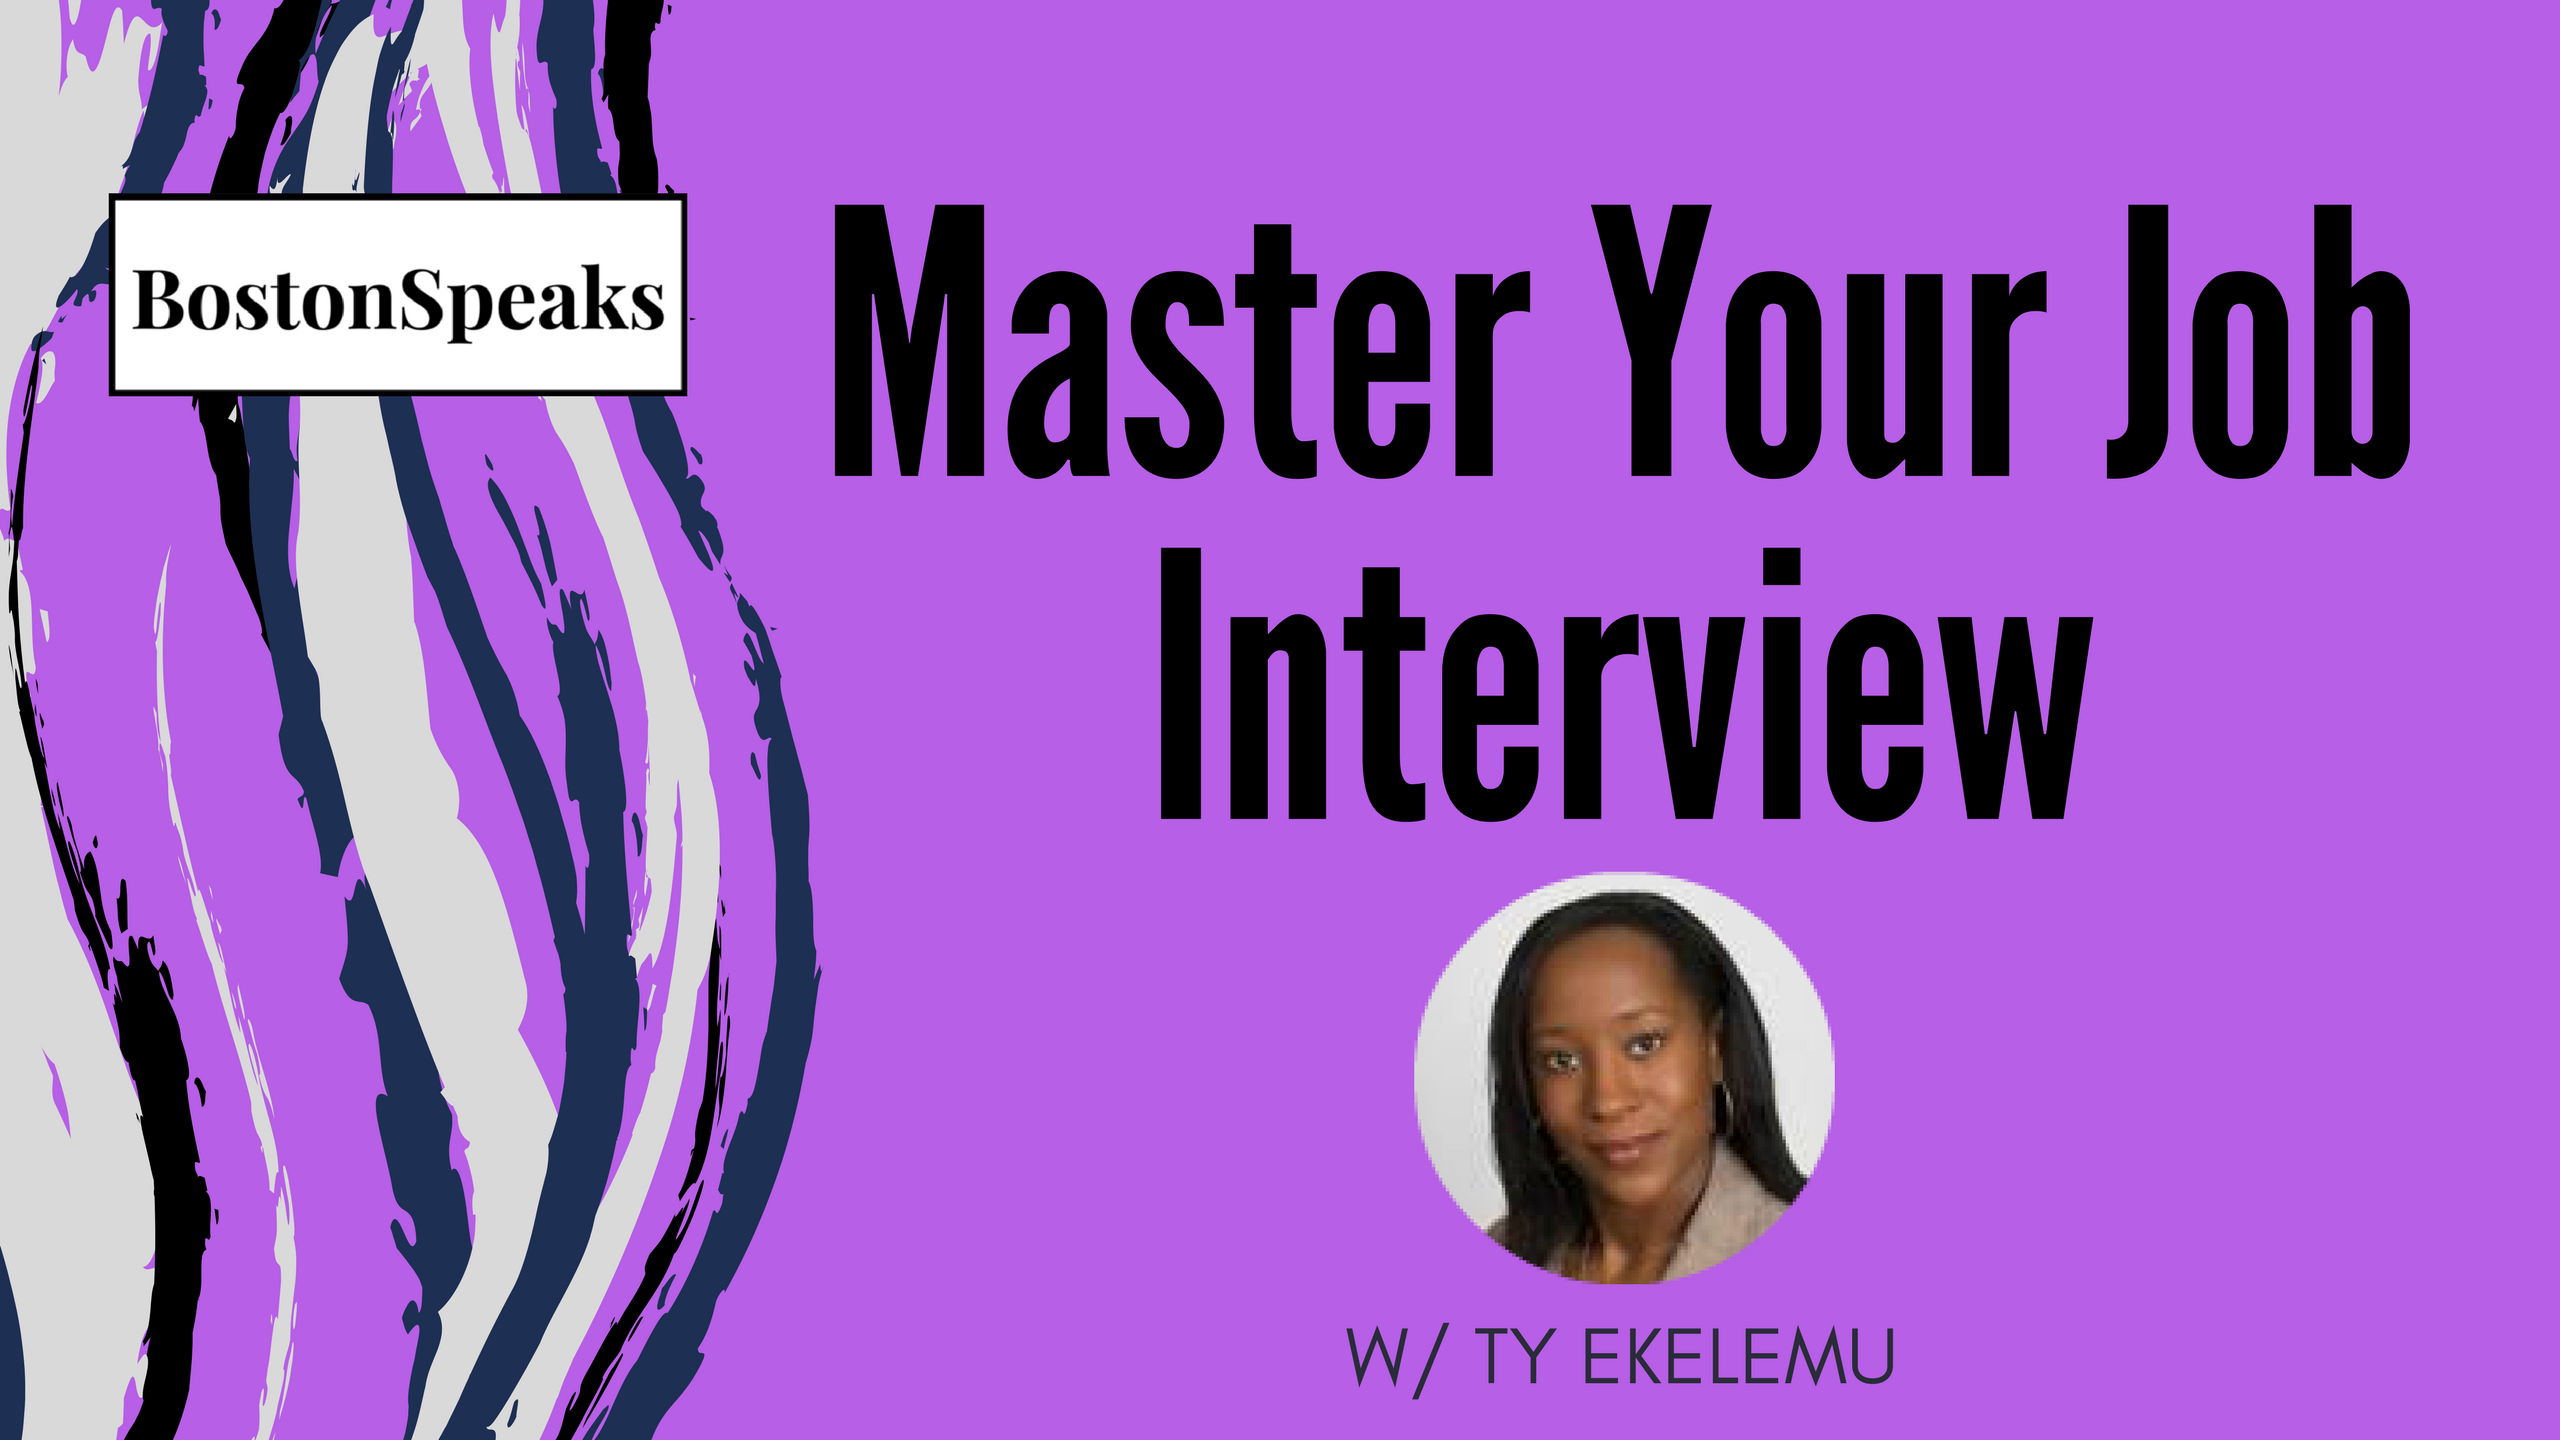 Master Your Job Interview